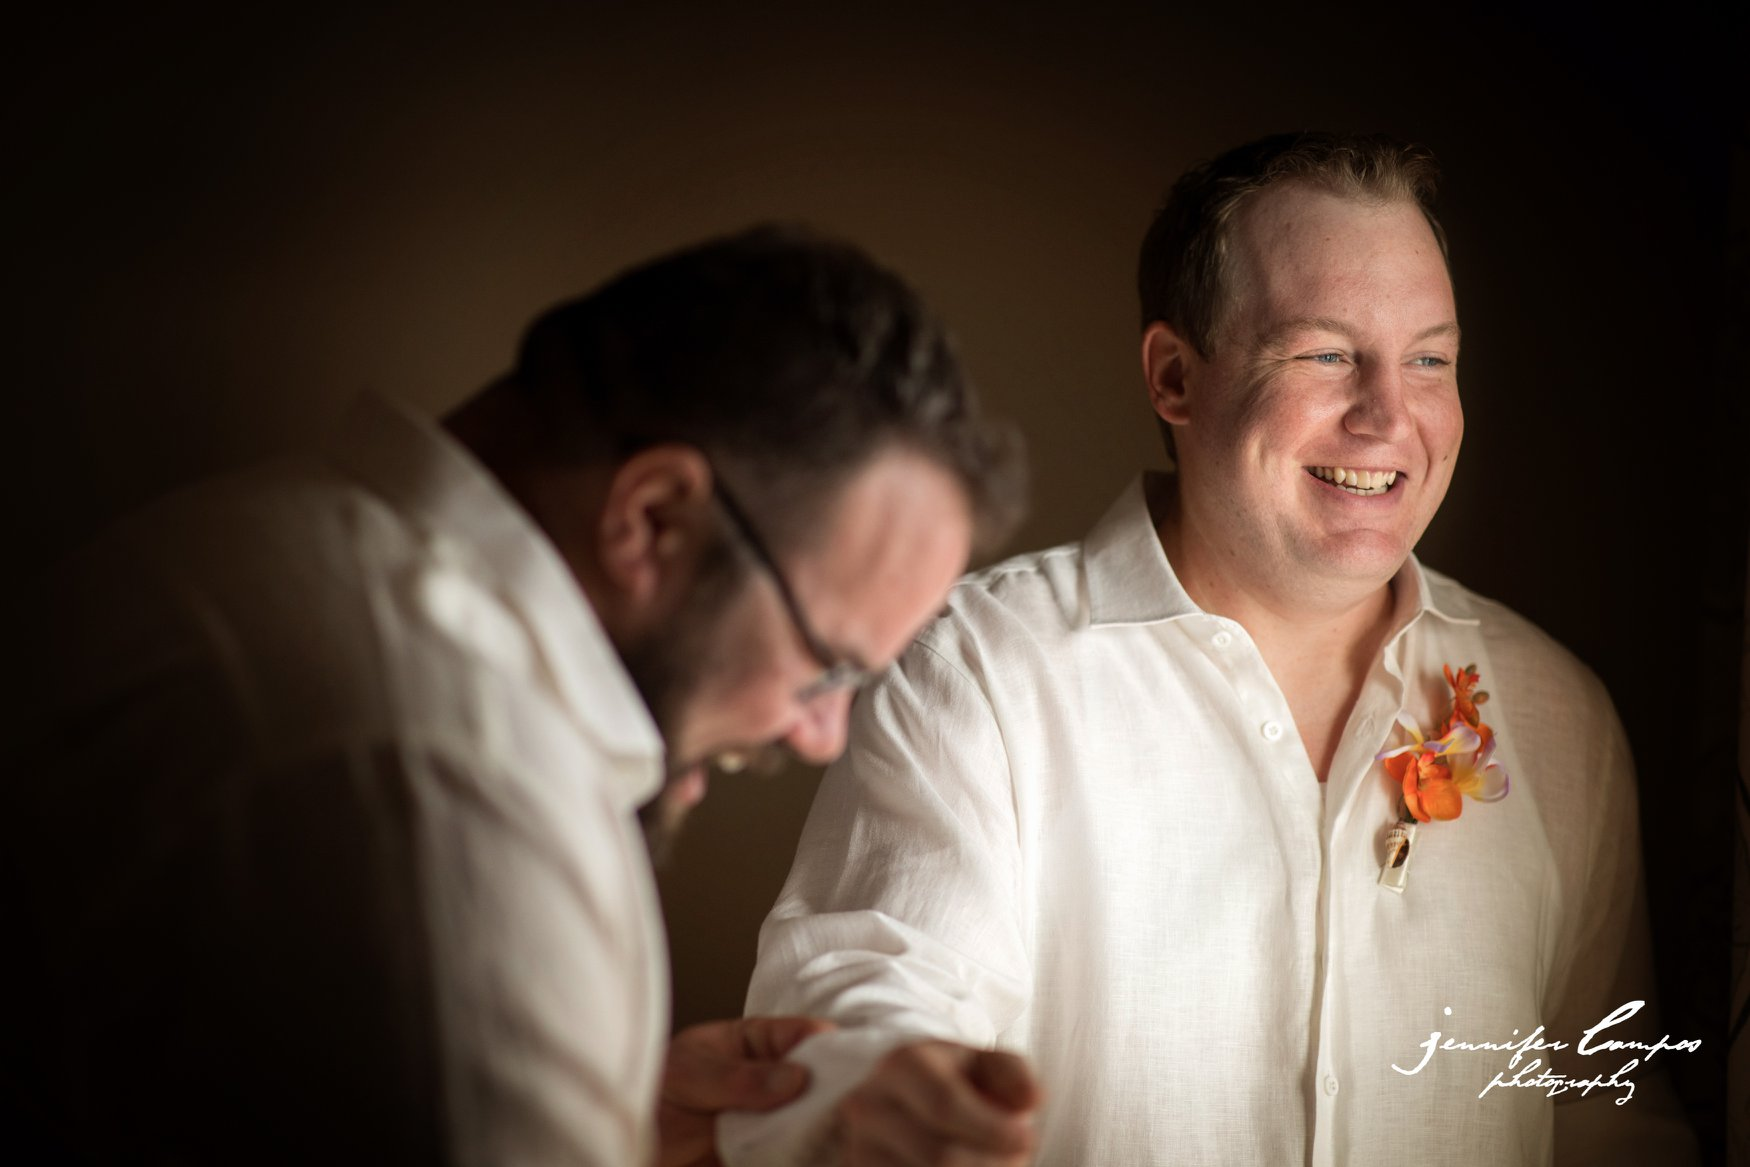 Groom Prep … Having fun while getting ready for his big day.